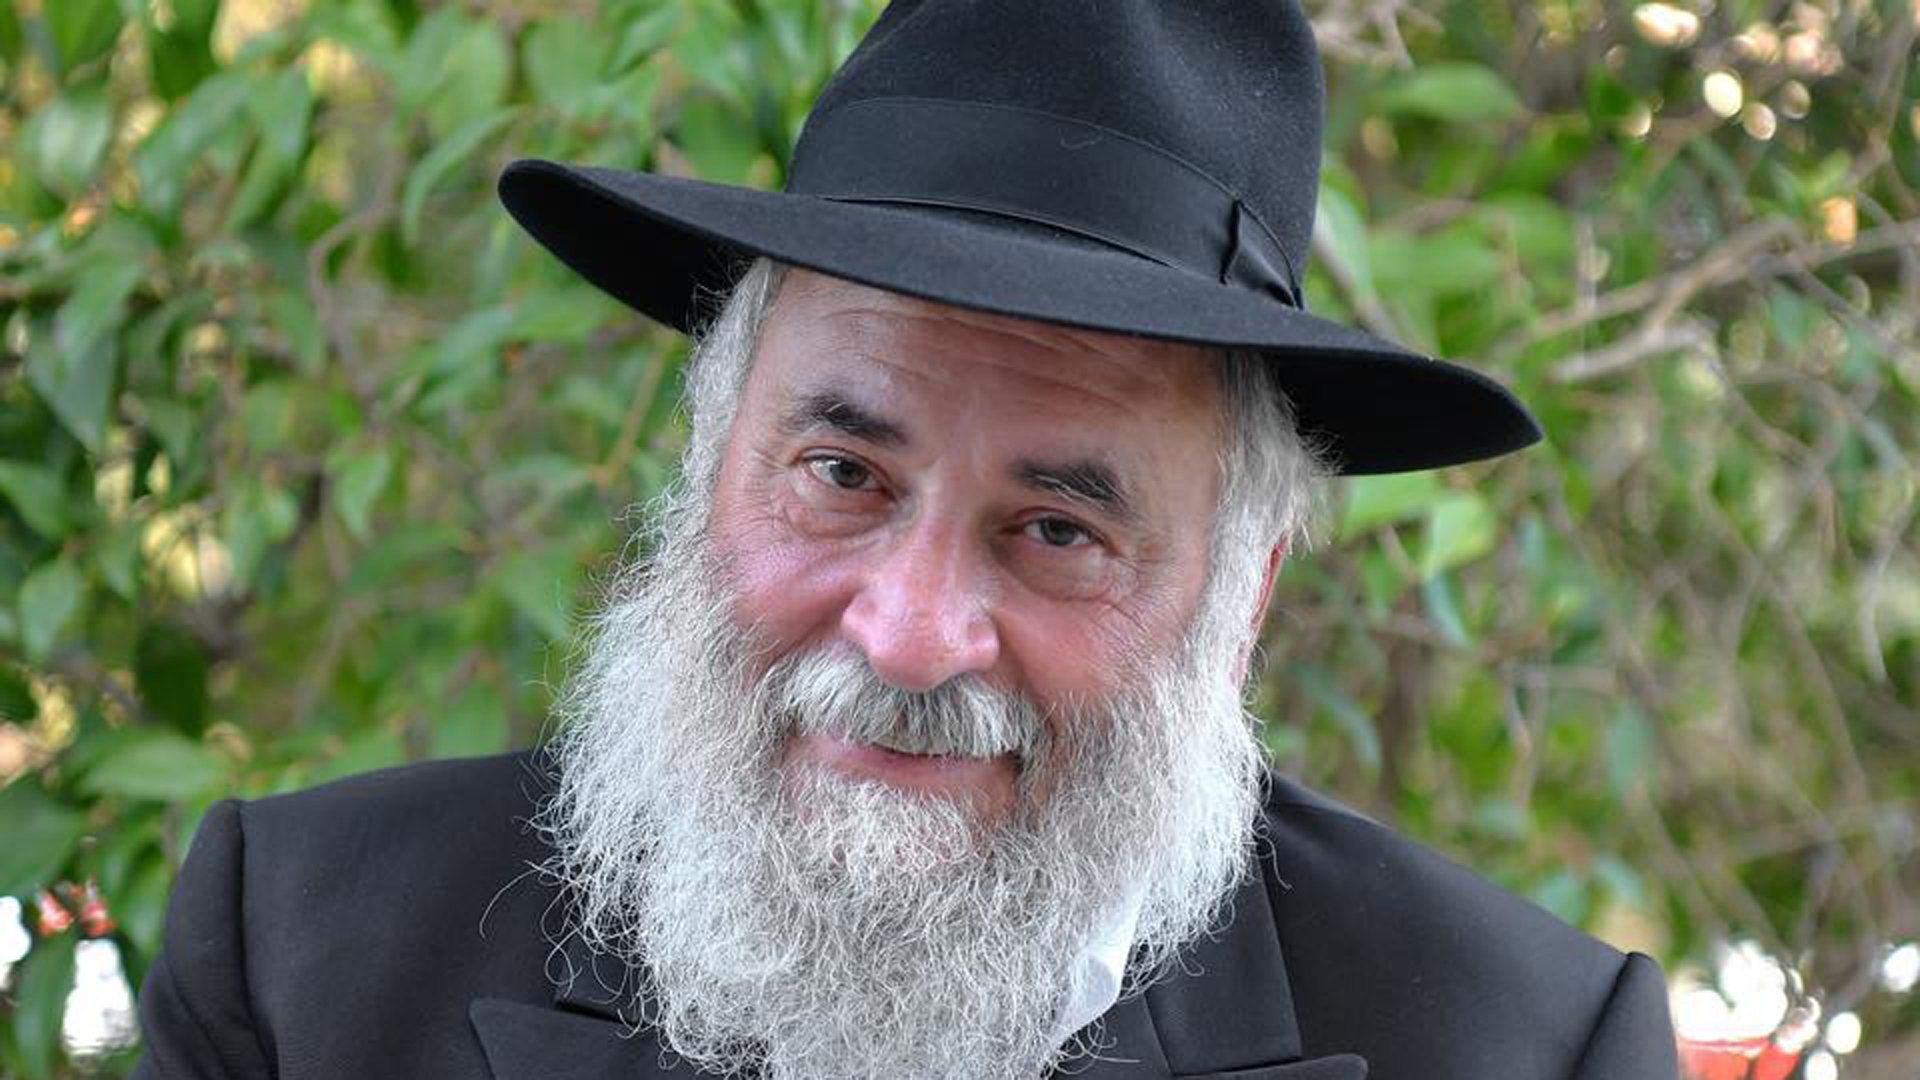 Yisroel Goldstein appears in an image CNN obtained on April 28, 2019.